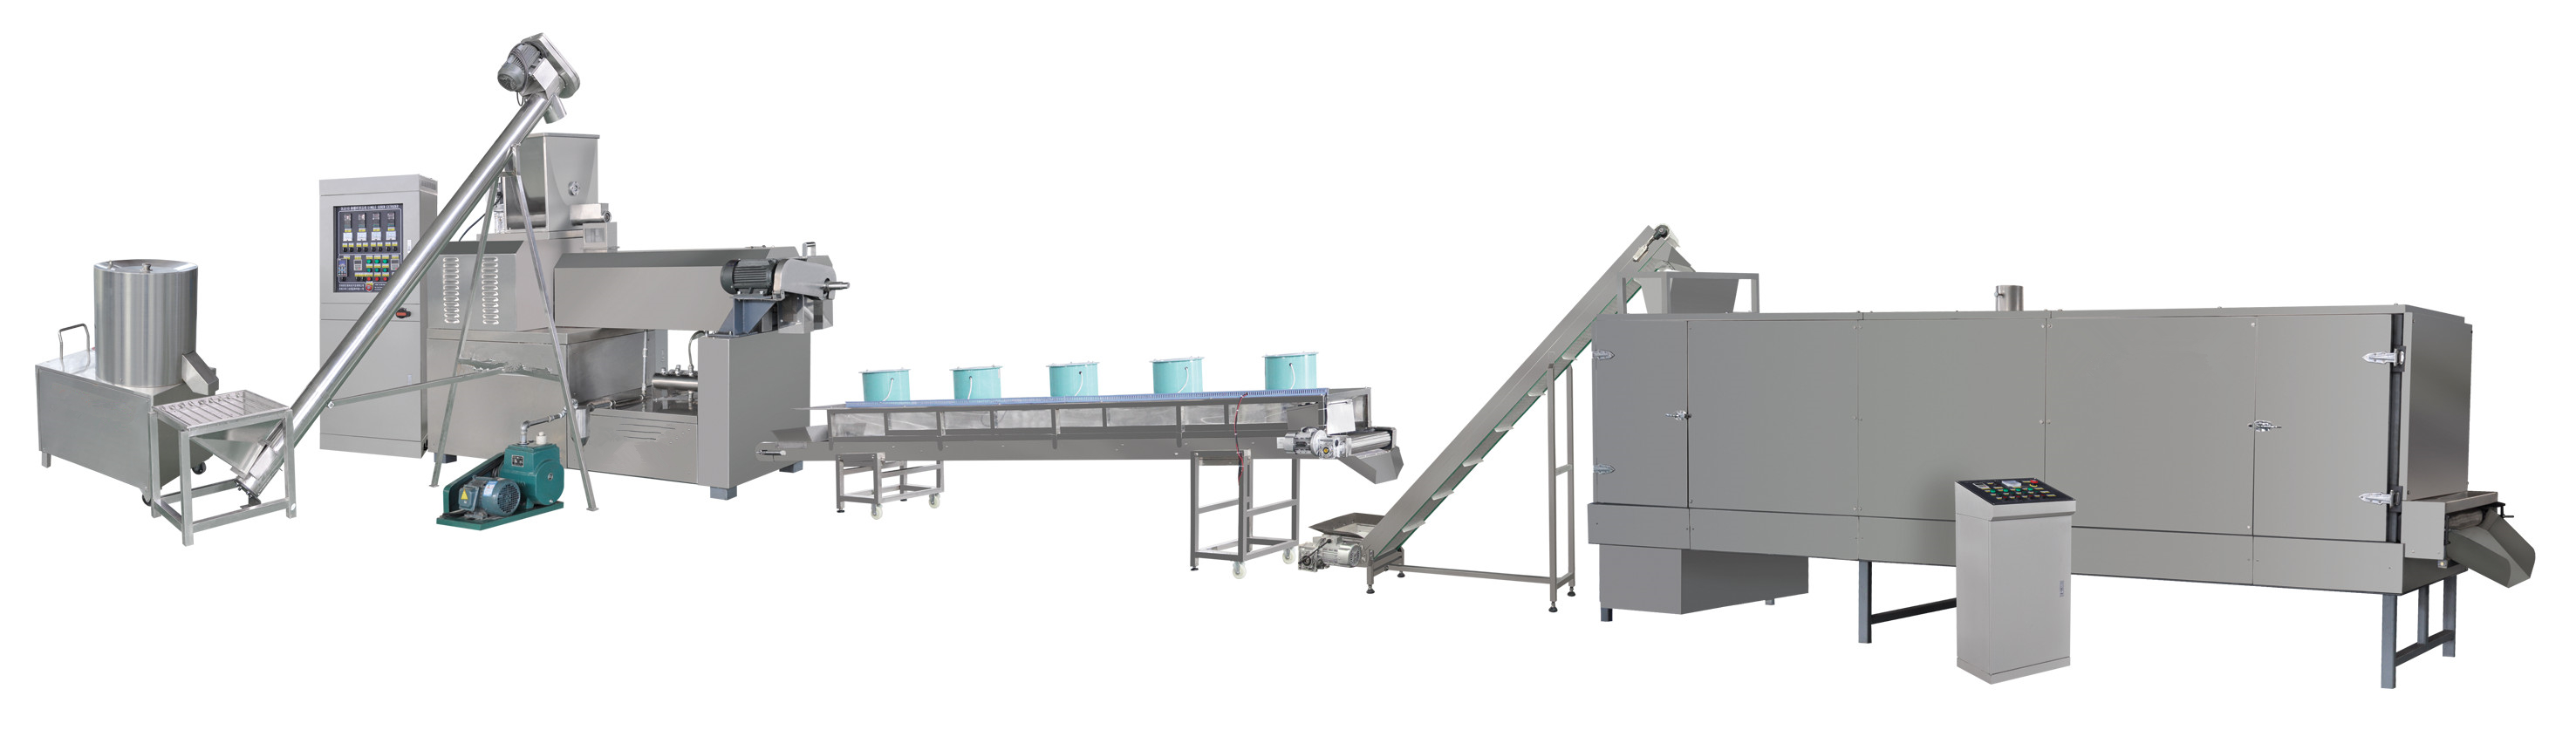 500-600kg per hour textured soya bean protein food machinery